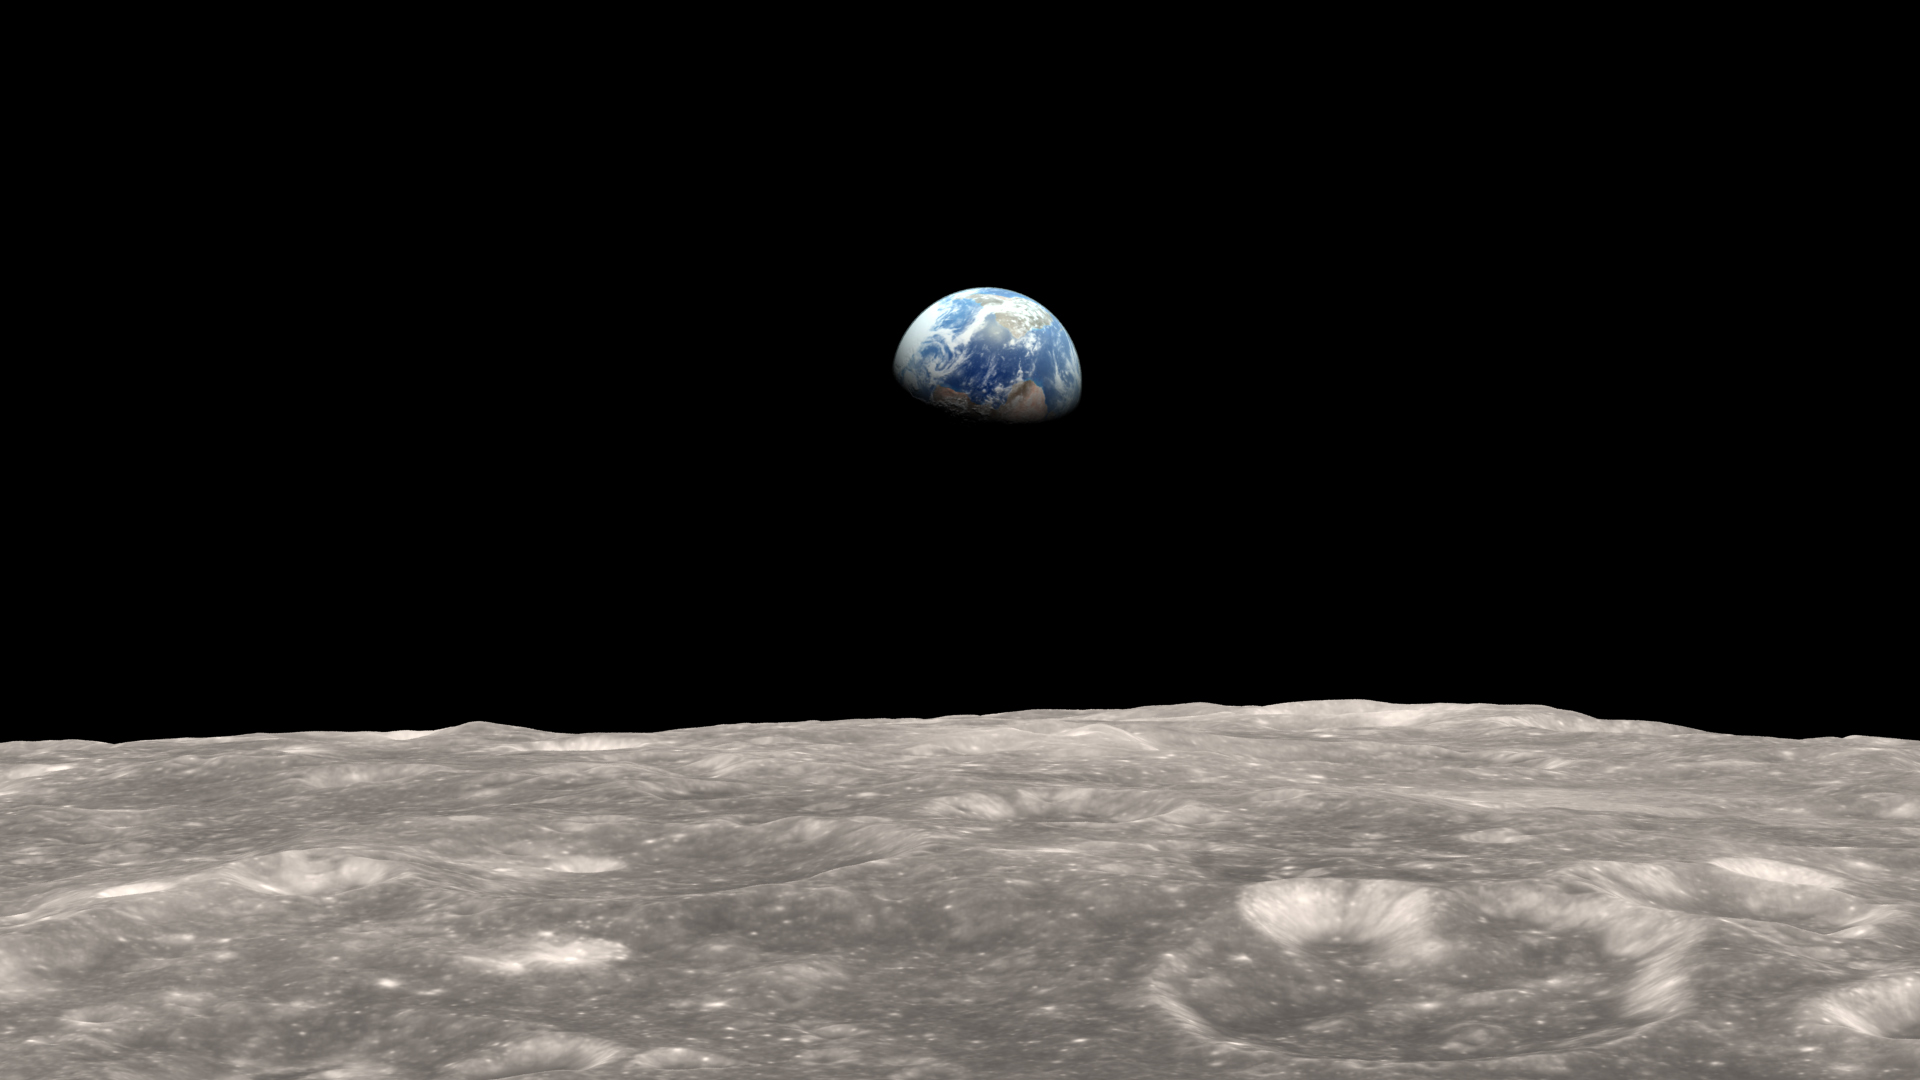 Moon Bumps: Earth's Gravity Creates Lunar Bulges